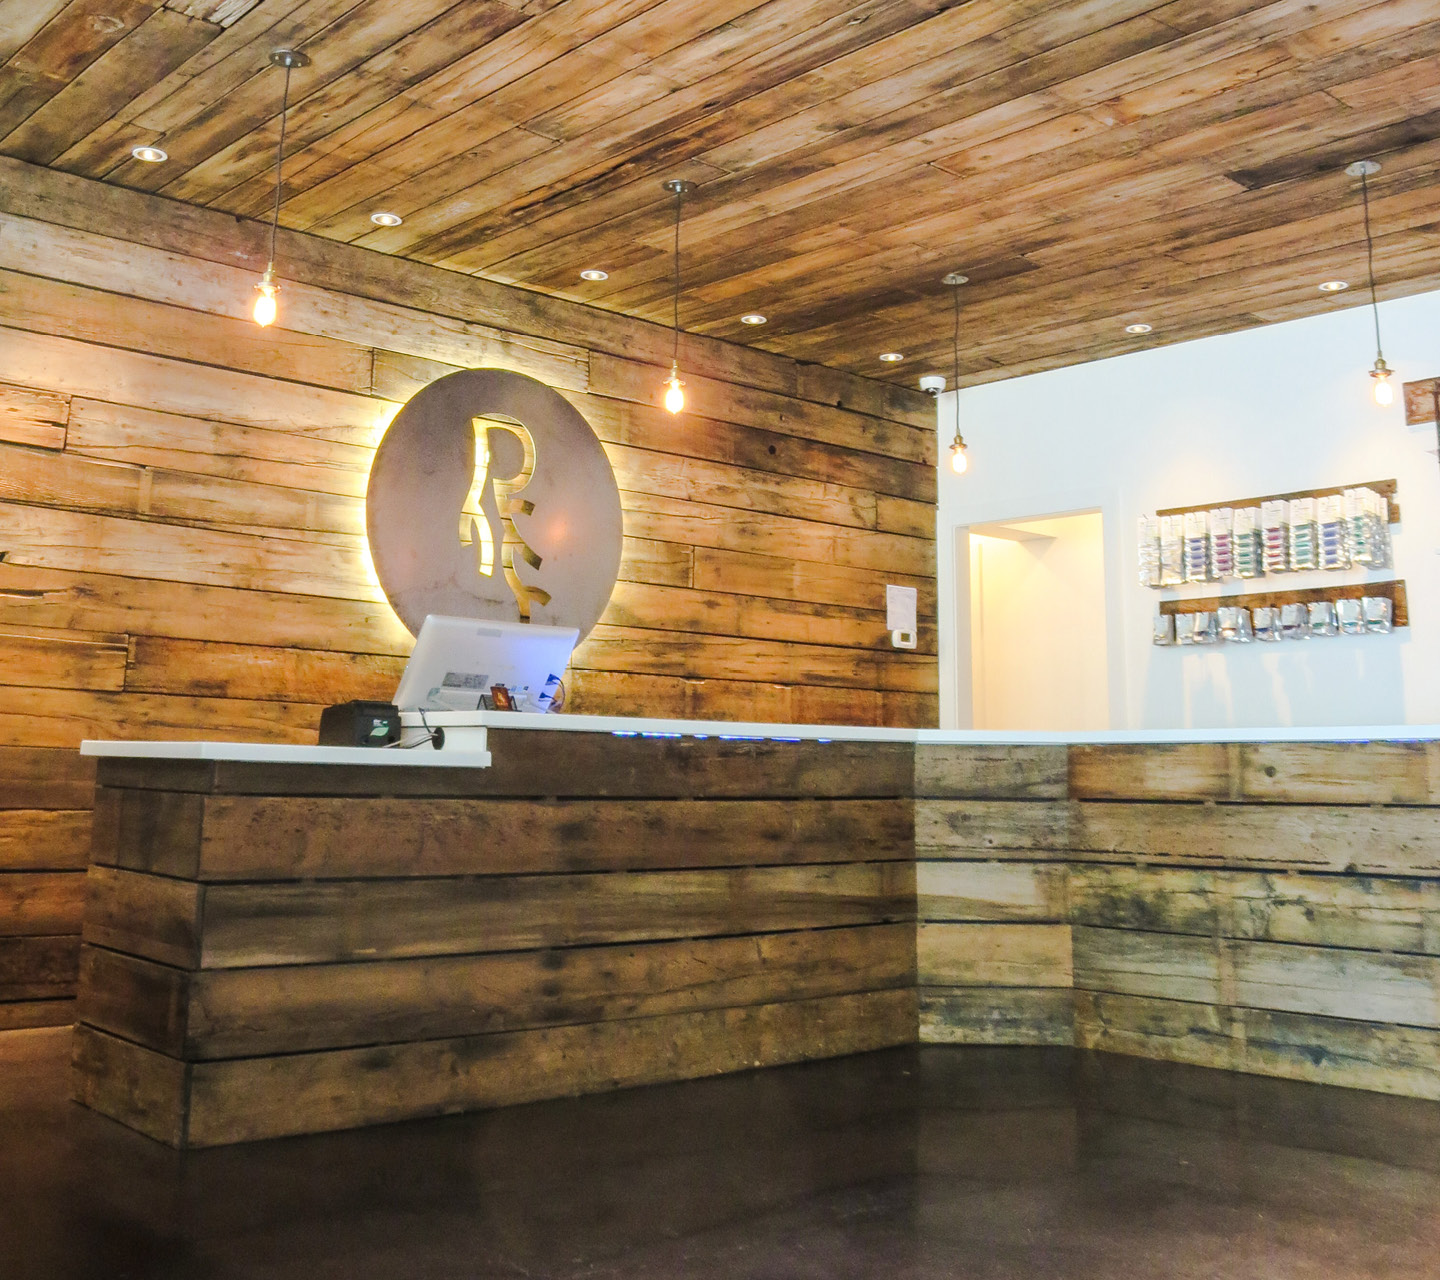 The Root Cellar Dispensary Design by High Road Design Studio